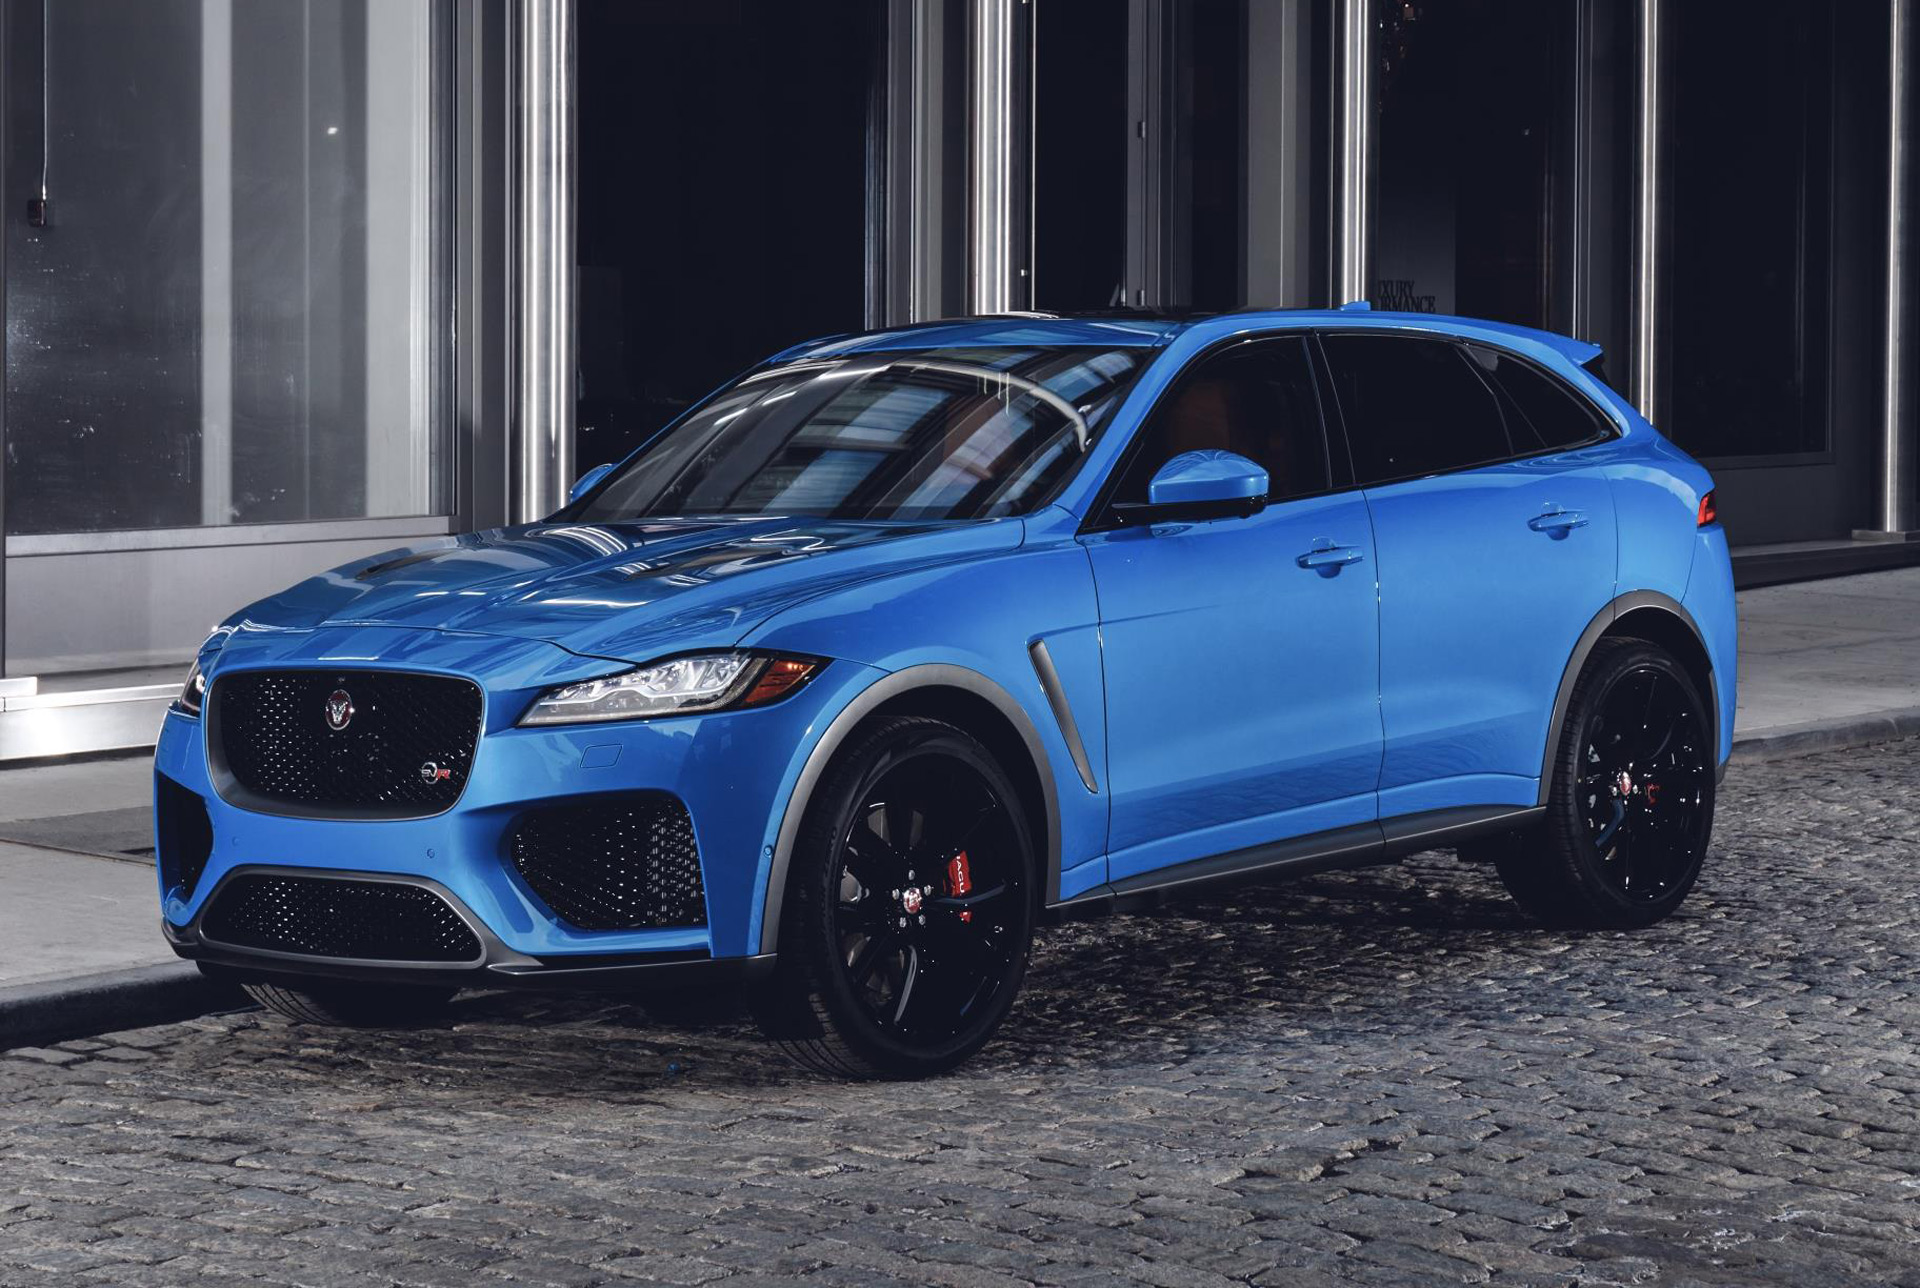 2019 Jaguar F-Pace SVR, 2020 Chevy Corvette, 2021 Porsche 911 Targa: This Week's Top Photos